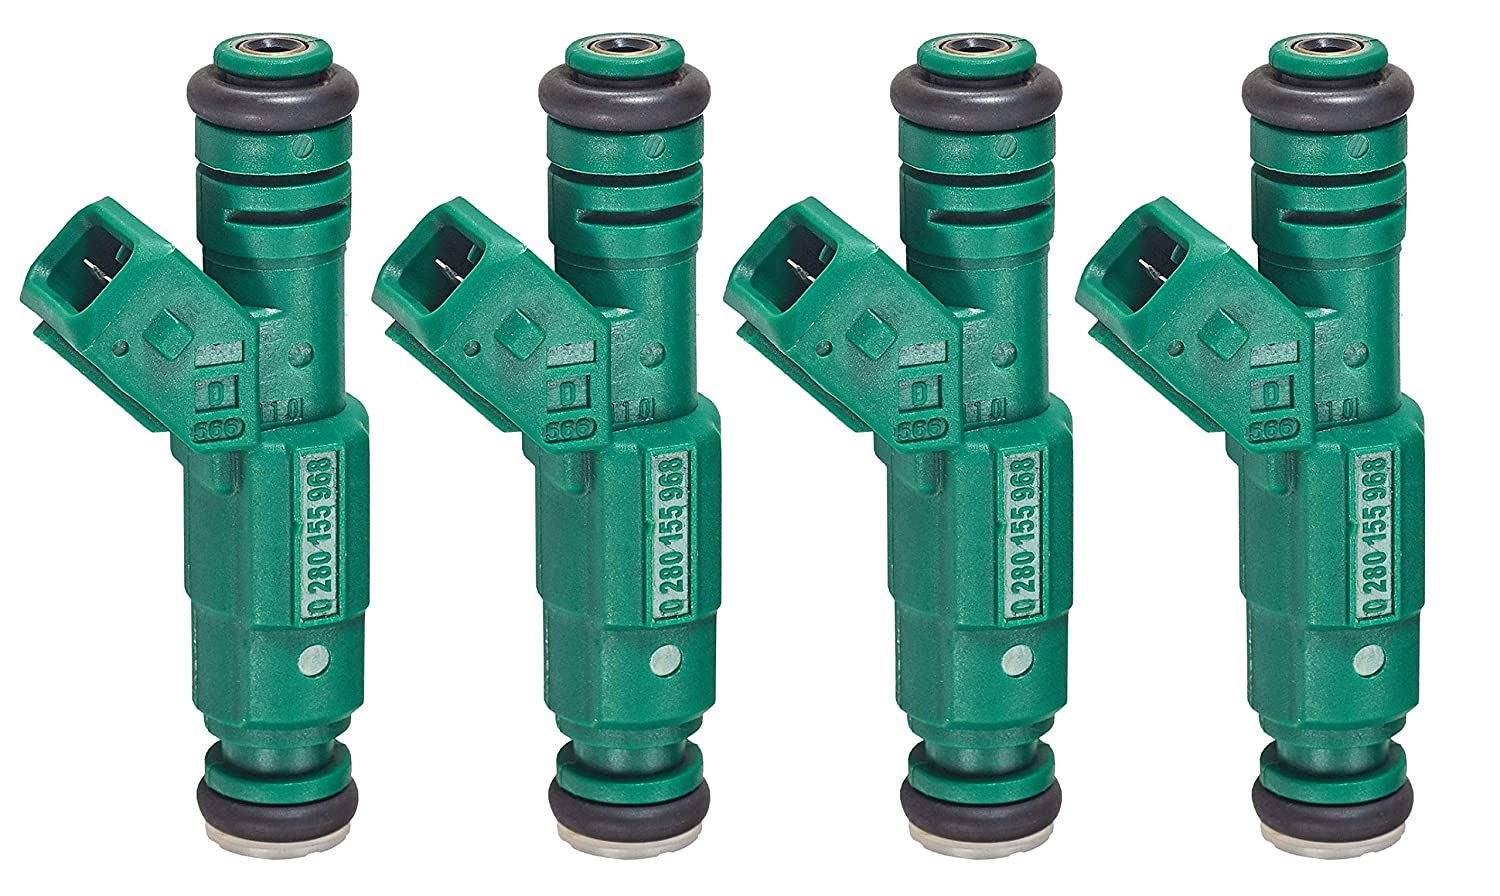 Pack of 8 Fuel Injector for 1985-2008 Chevrolet Pontiac Ford Mustang Lightning BMW Lotus Esprit 0280155968 440cc 42 lb//hr 1.8T Turbo 2.3L